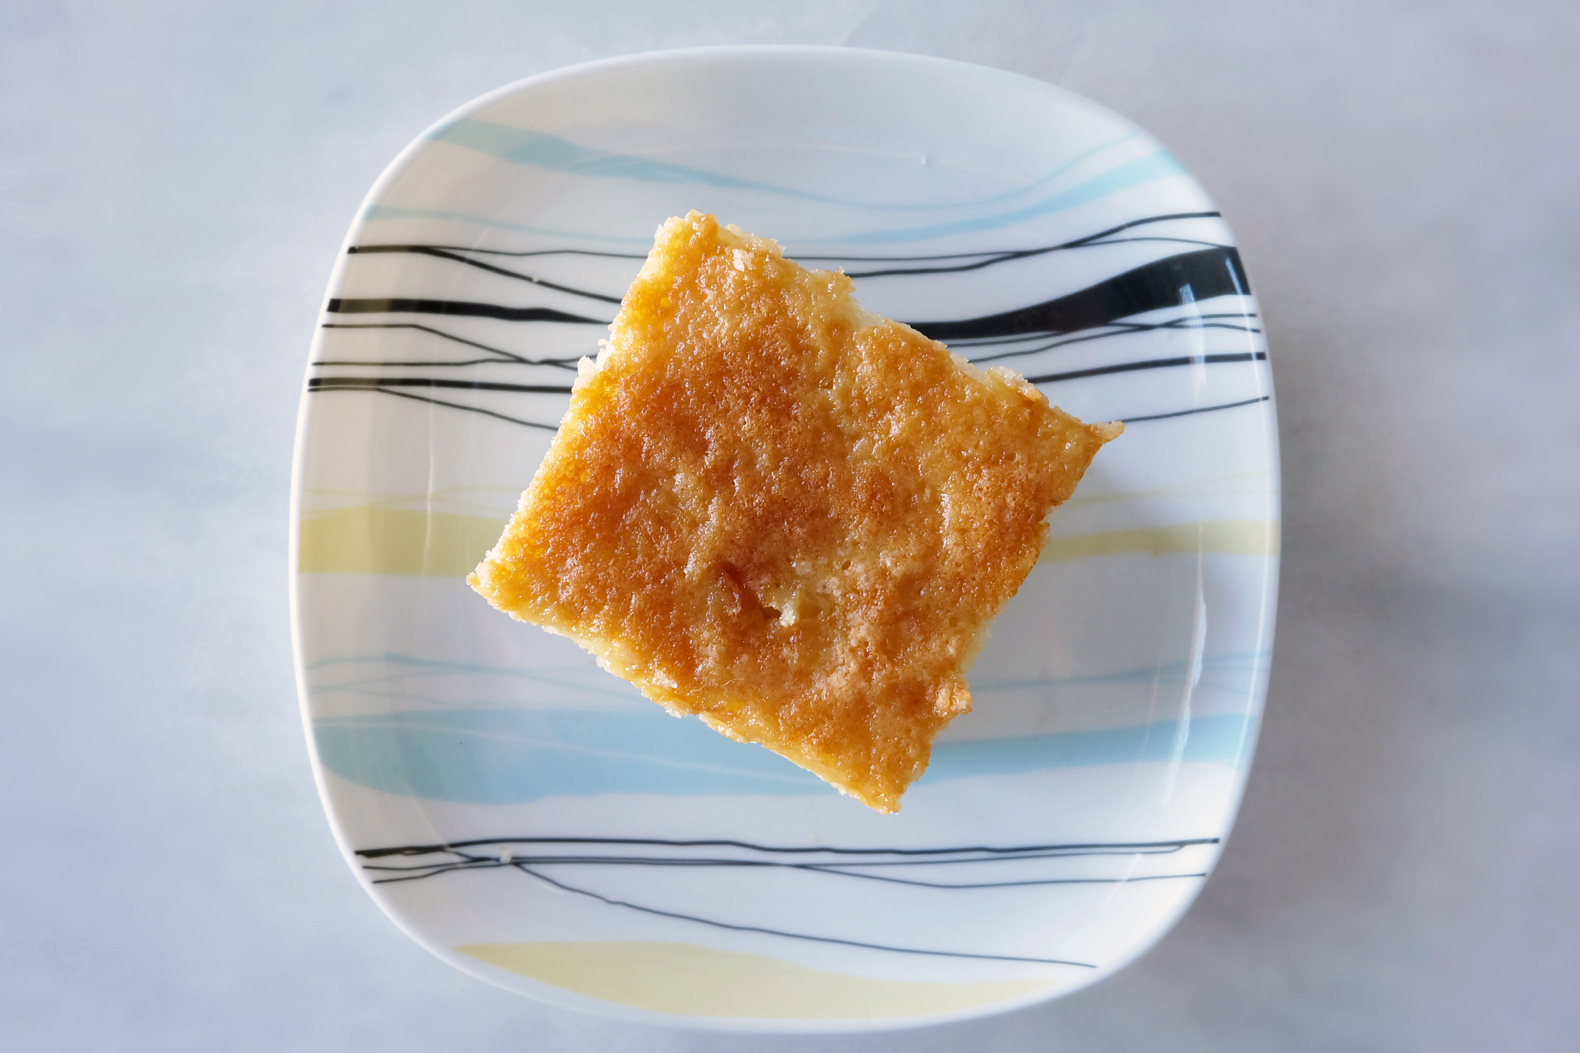 slice of hot milk cake from above